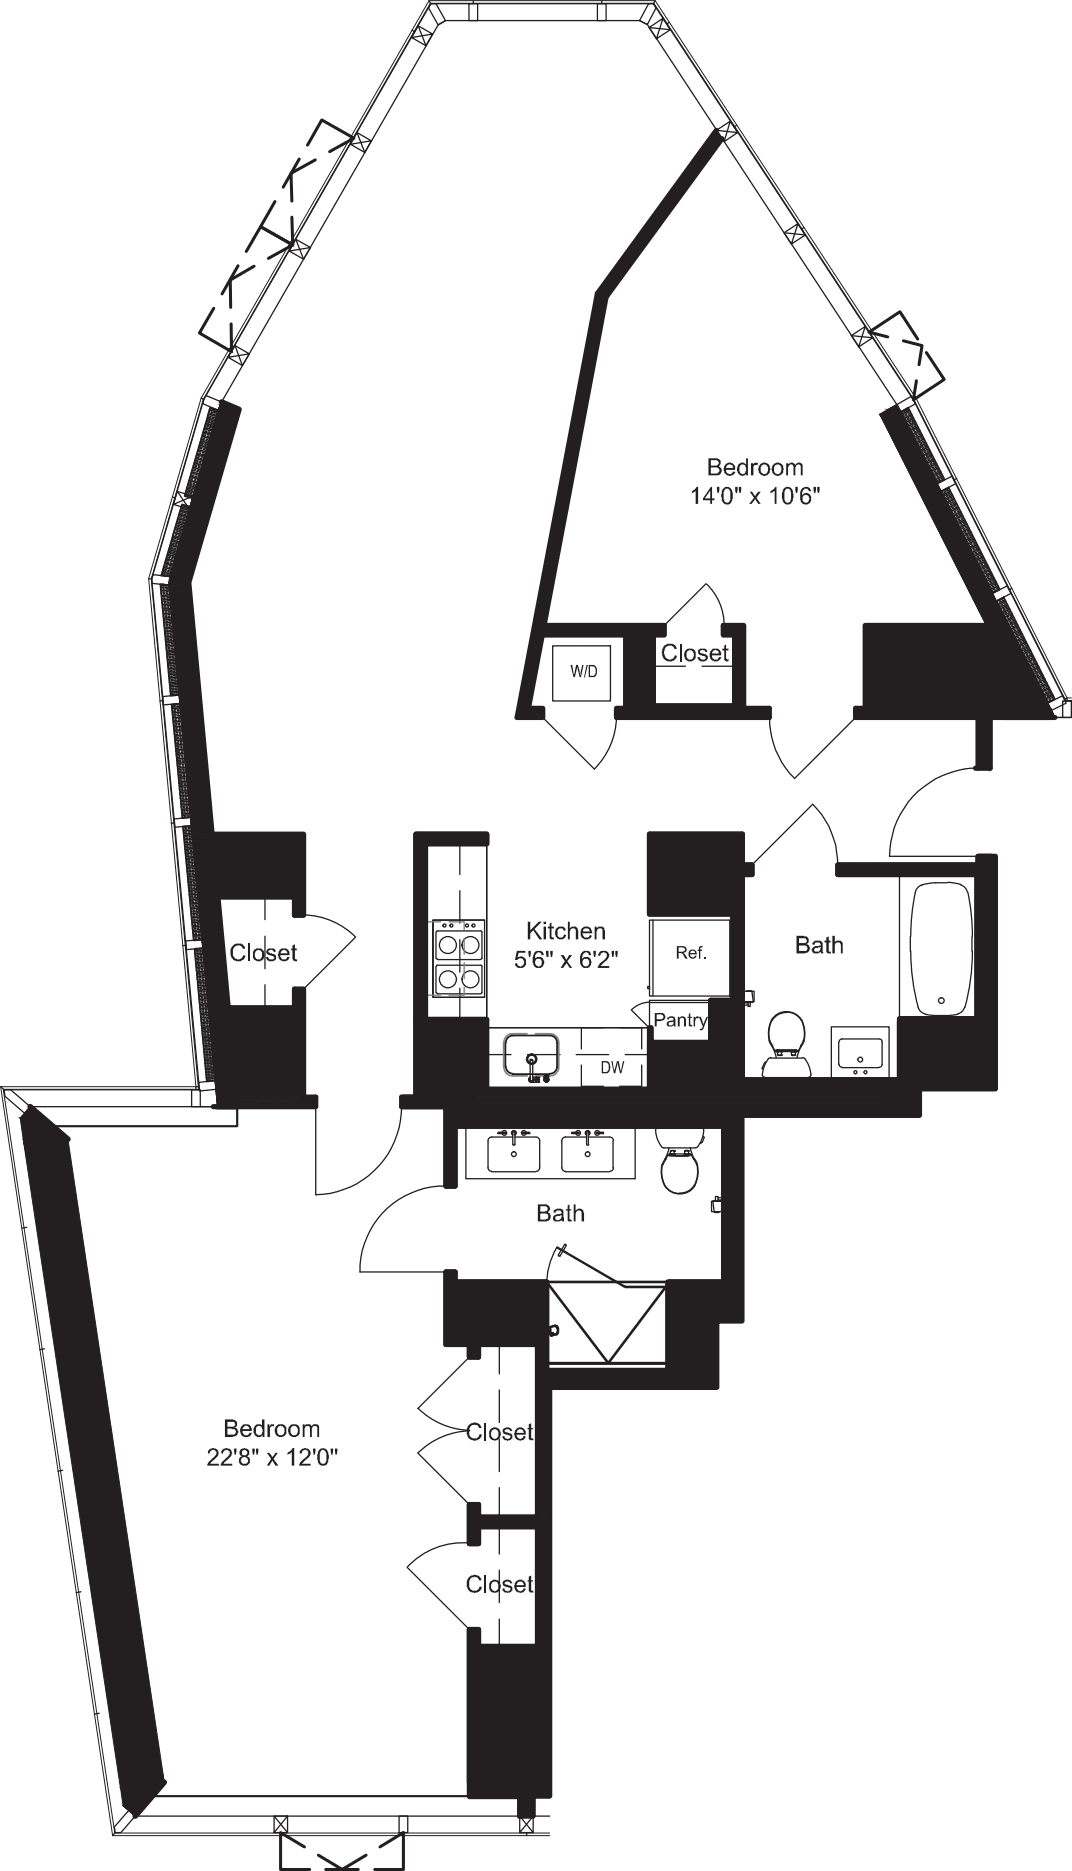 Two Bedroom K 12-19